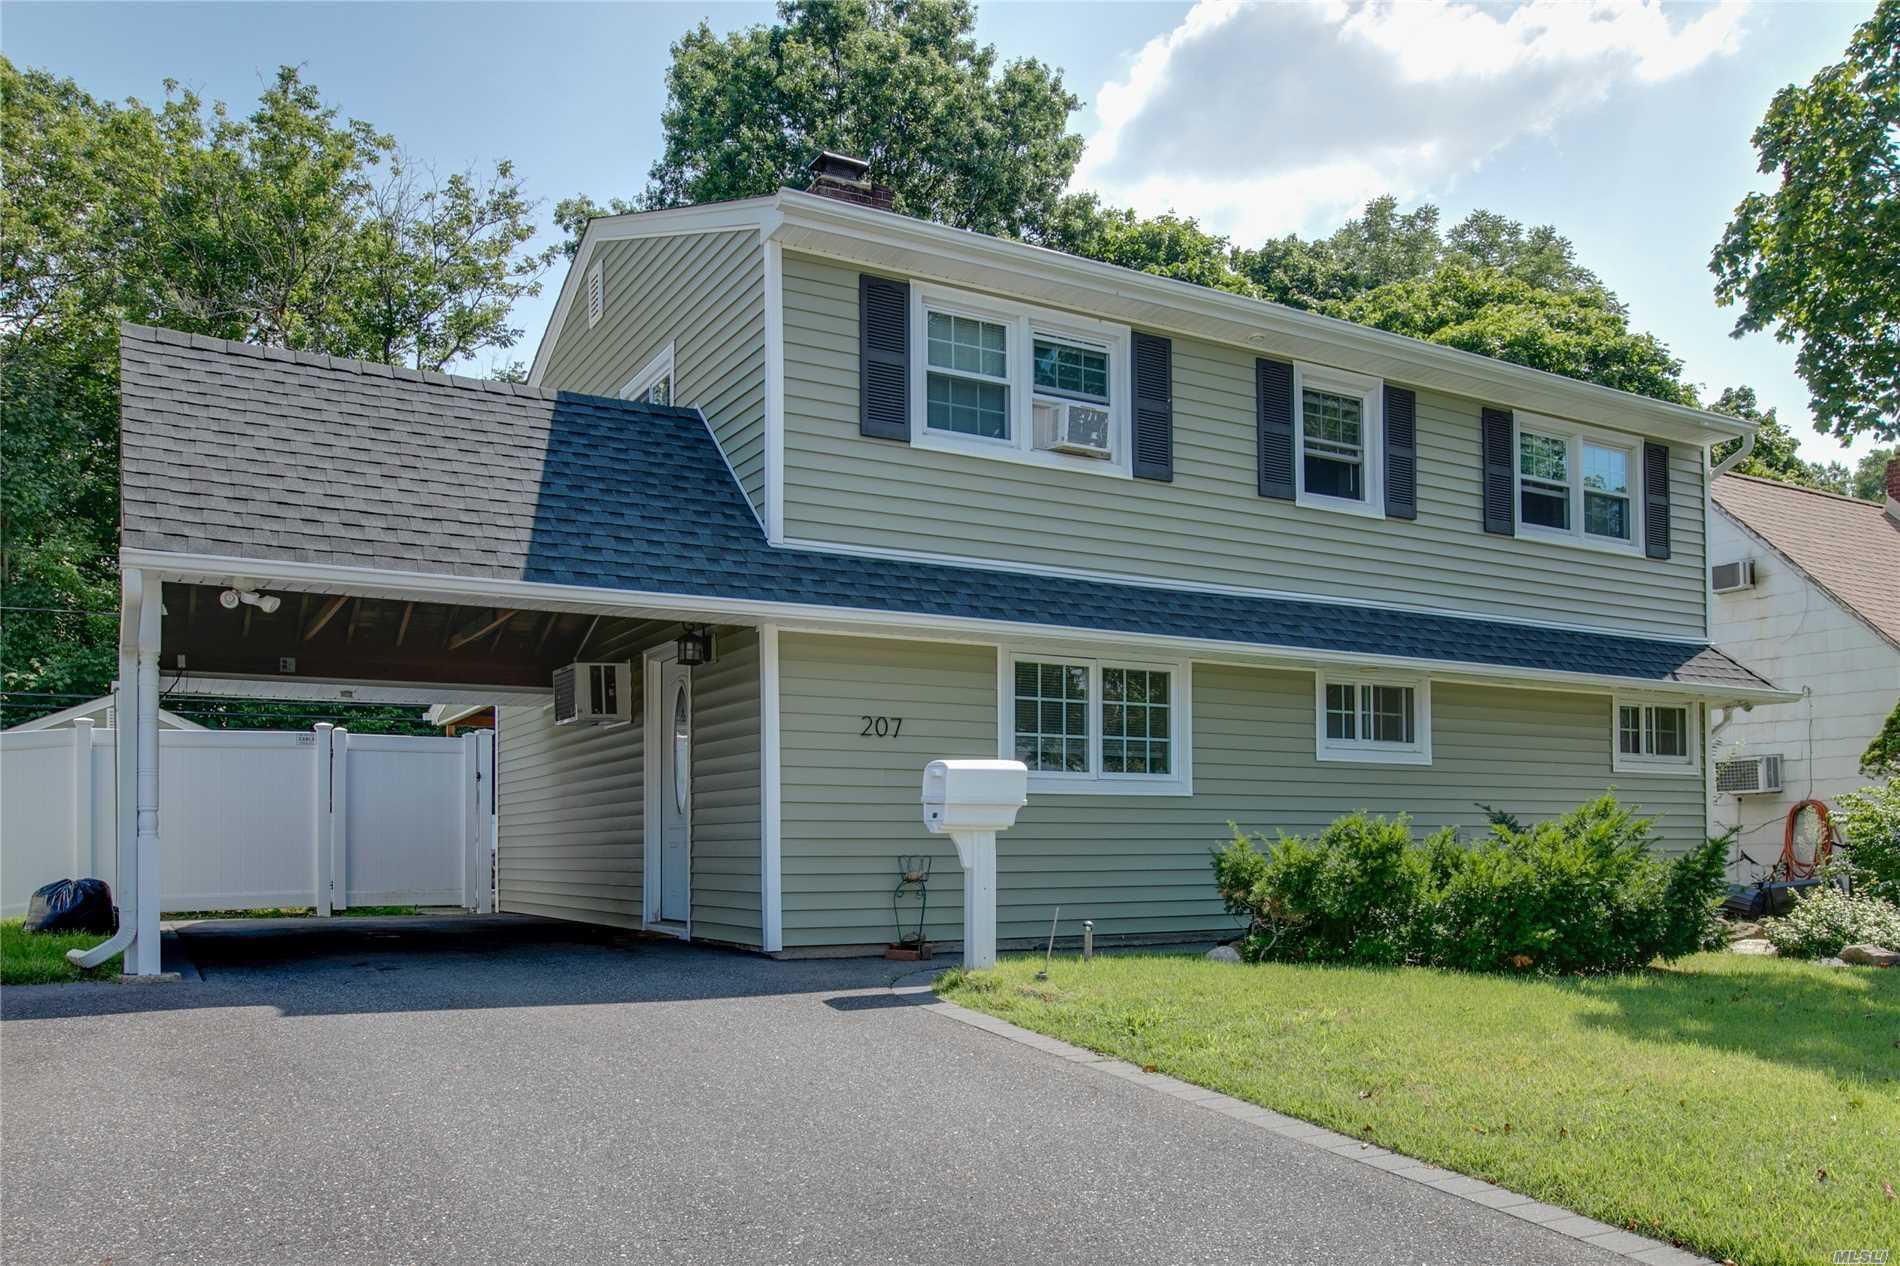 Beautiful Spacious Expanded Fully Dormered Cape. 5 Bedrooms, Possible Mother Daughter With Proper Permits. Newer Roof, Windows, Sliding Door, Siding, Pvc Fence Updated Granite Eik, Stainless Steel Appliances, 2 Updated Baths.